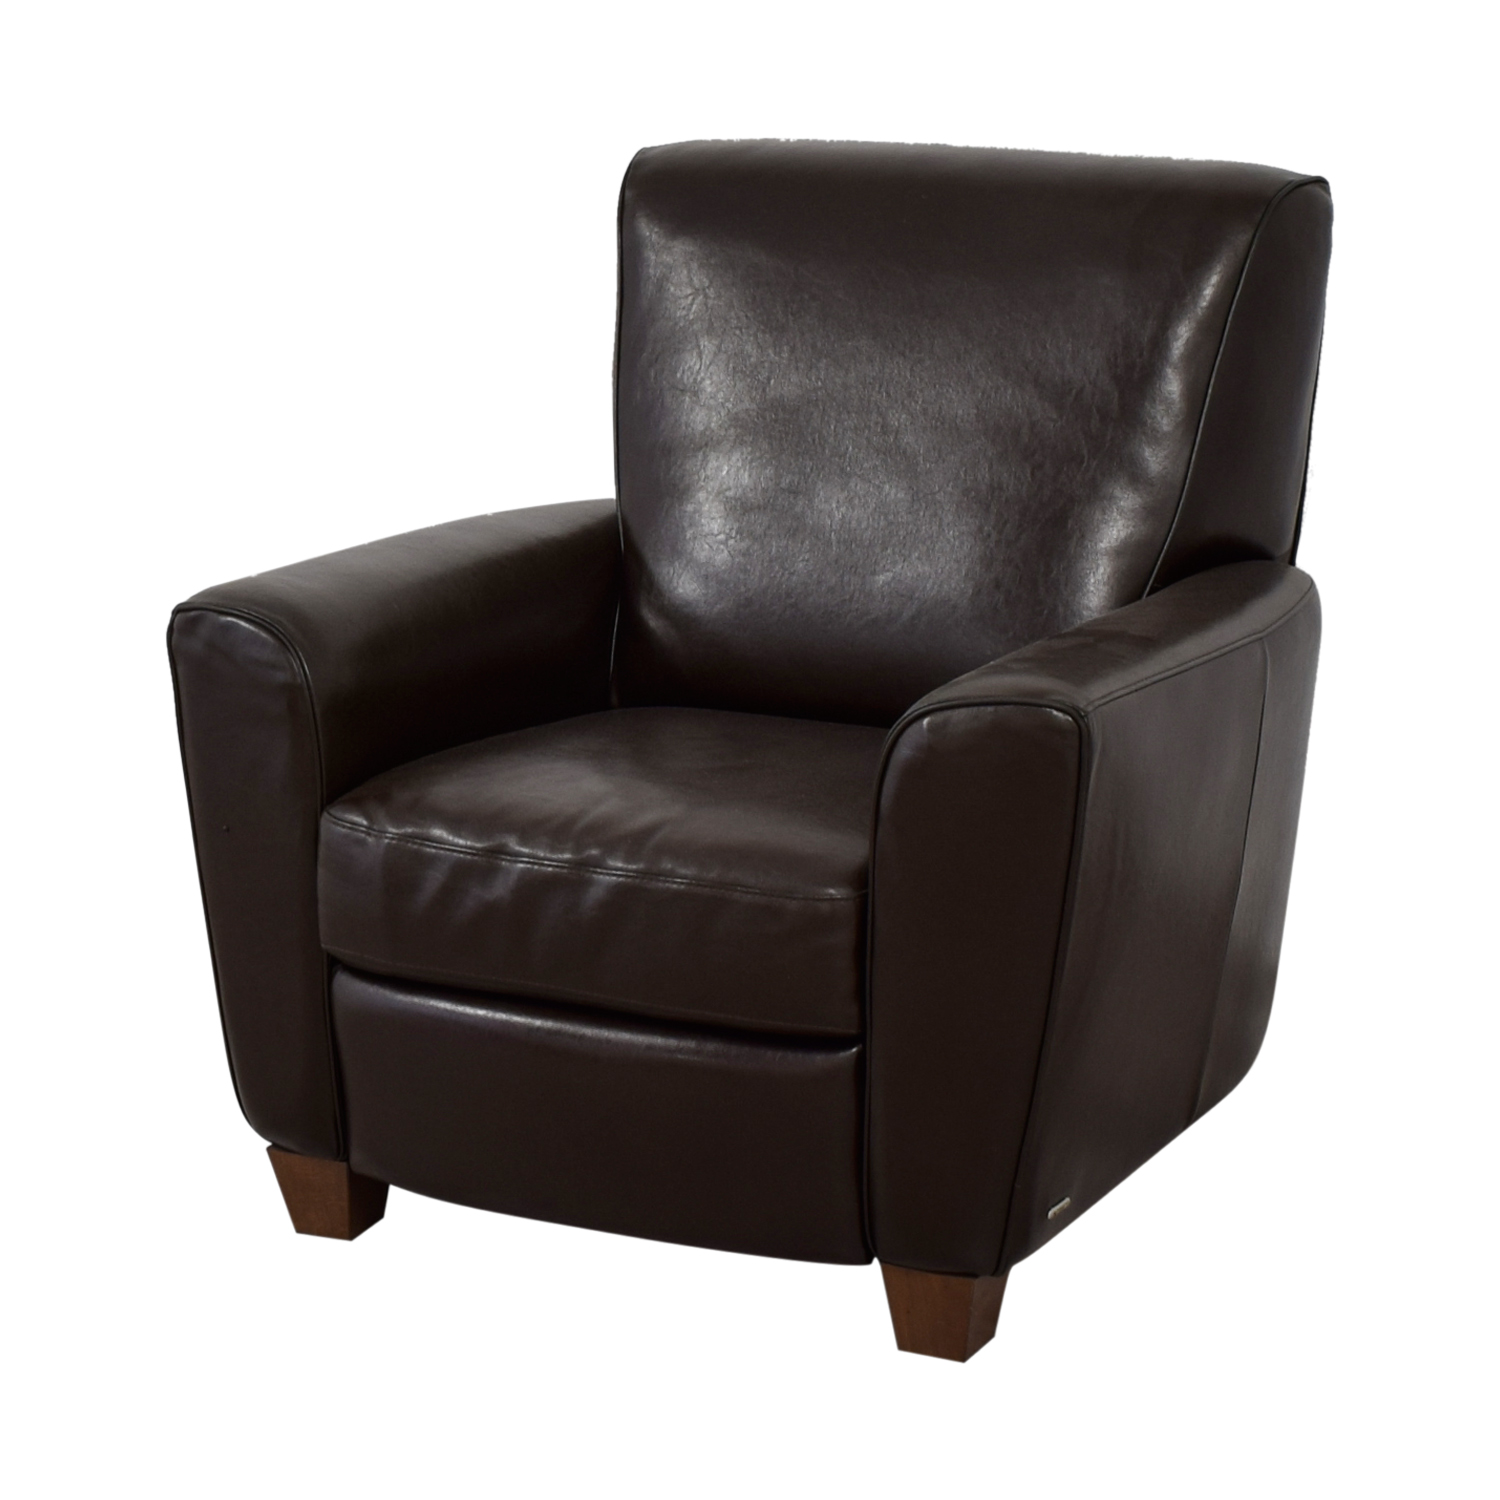 79 Off Natuzzi Natuzzi Brown Leather Recliner Chairs